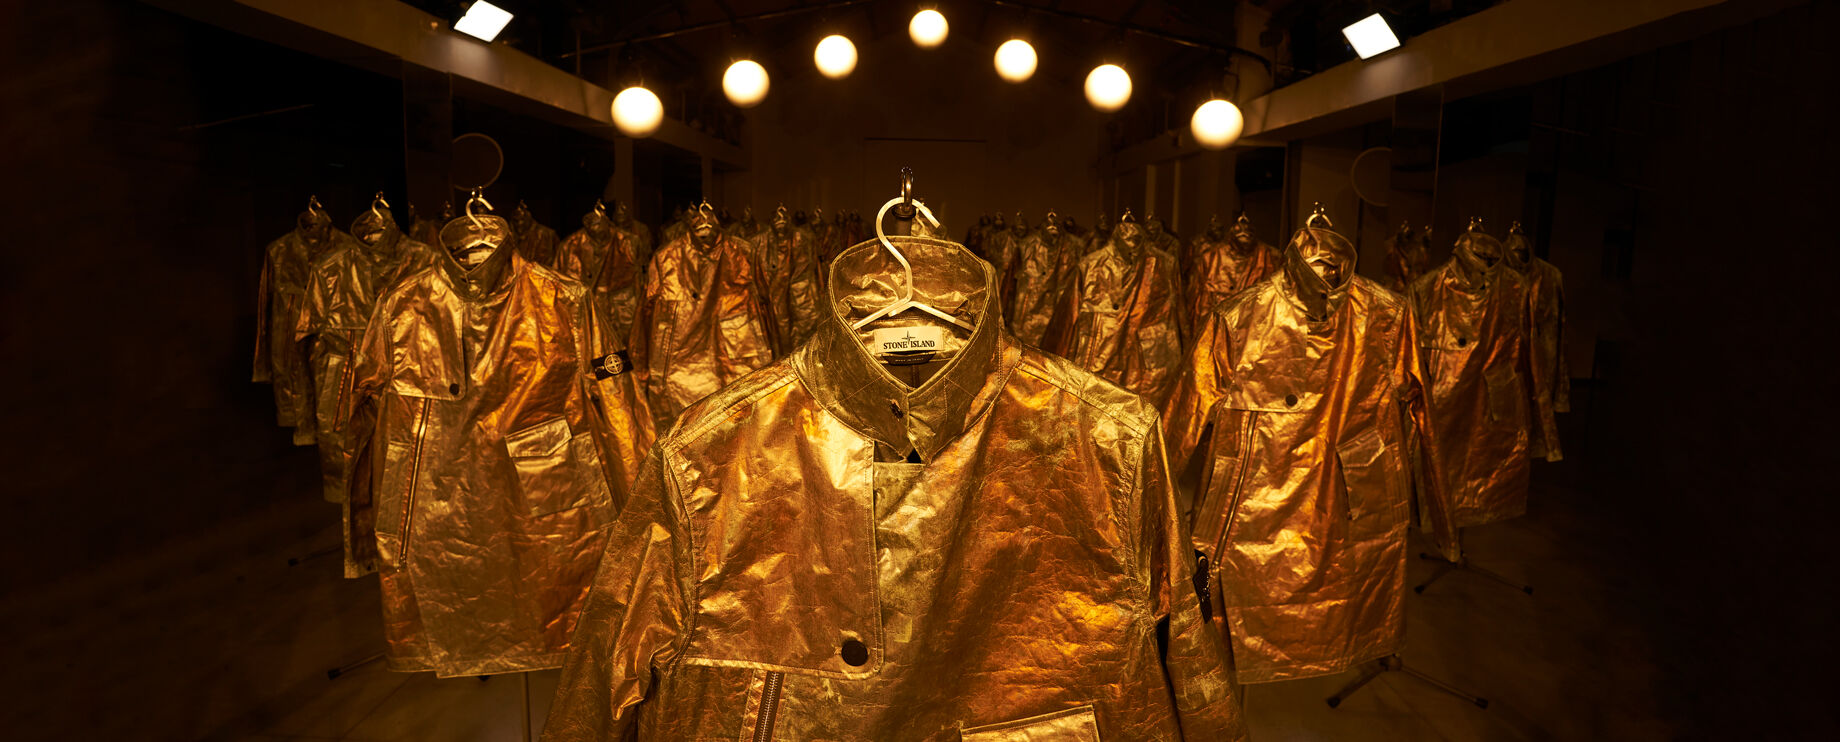 Numerous rows of Stone Island Prototype Research Series 05 Copper Nanotechnology jackets displayed in a warehouse setting under bright lighting.